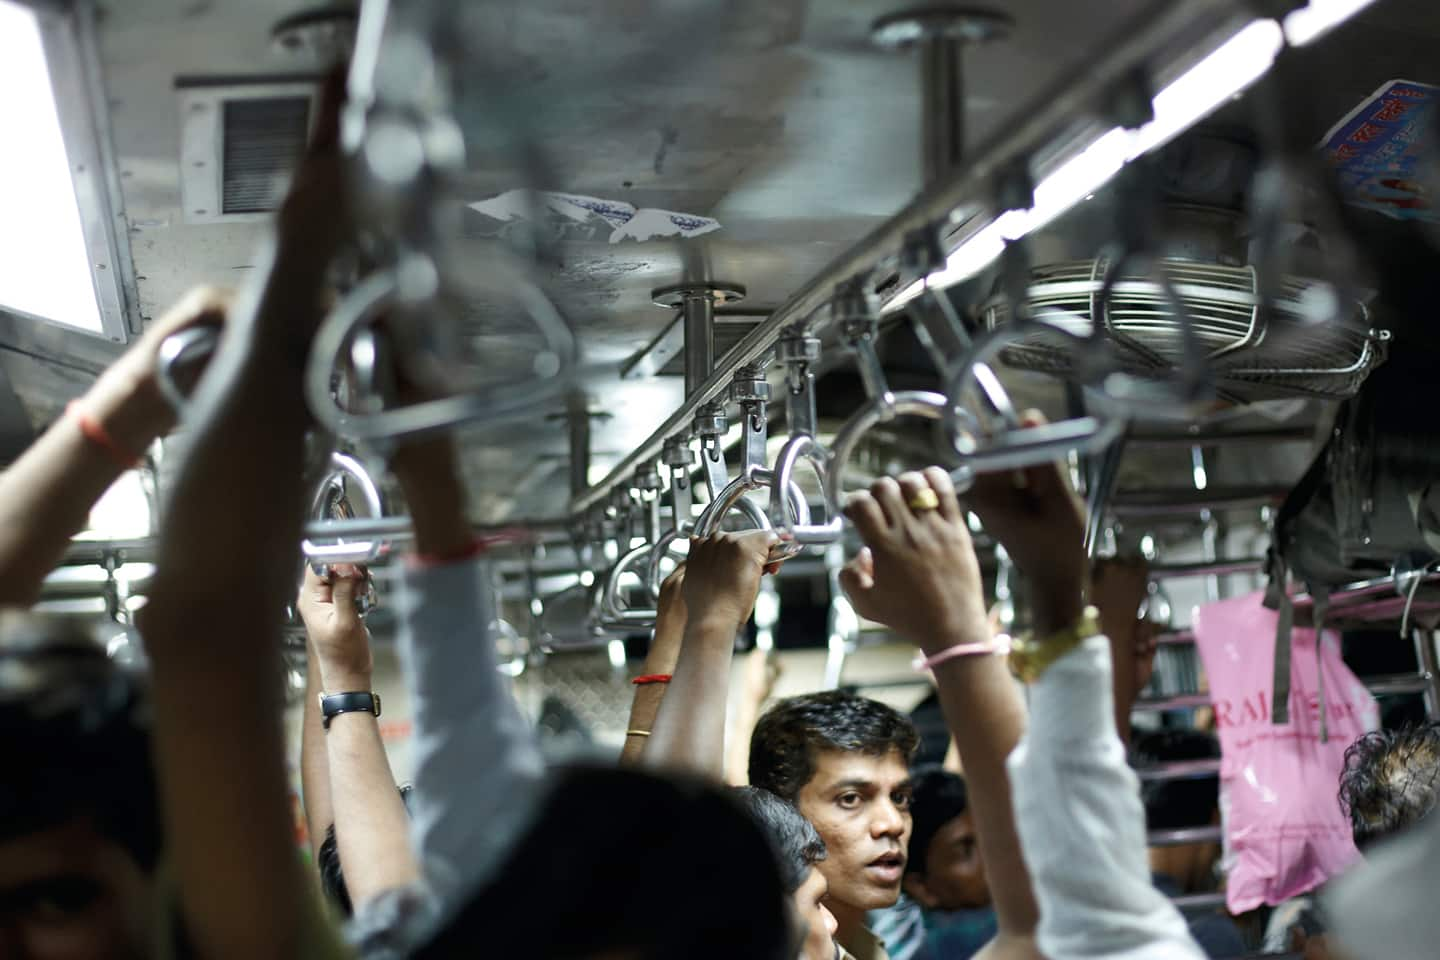 Sustainable urbanization - Myth or reality?, People in train